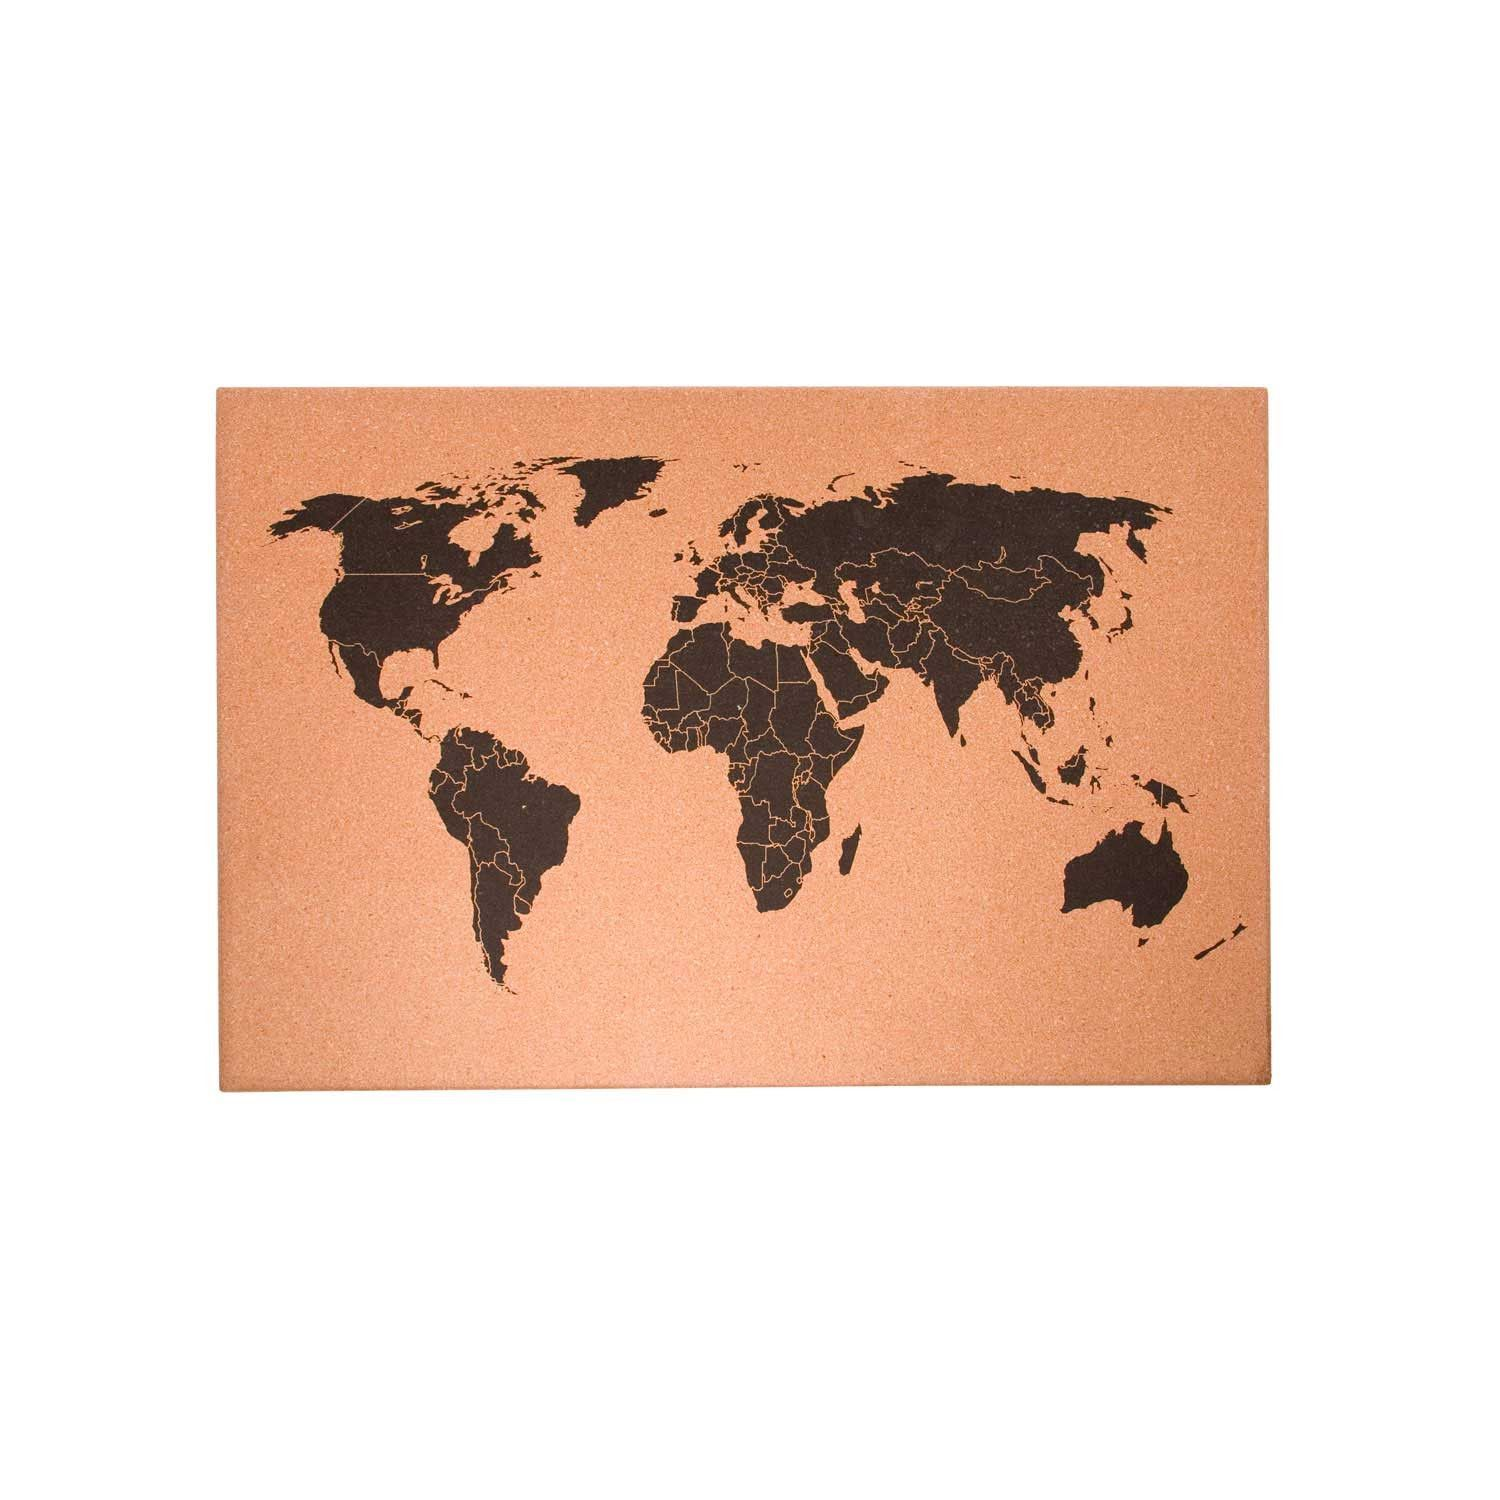 World map cork board travel diy pinterest cork boards cork world map cork board gumiabroncs Image collections